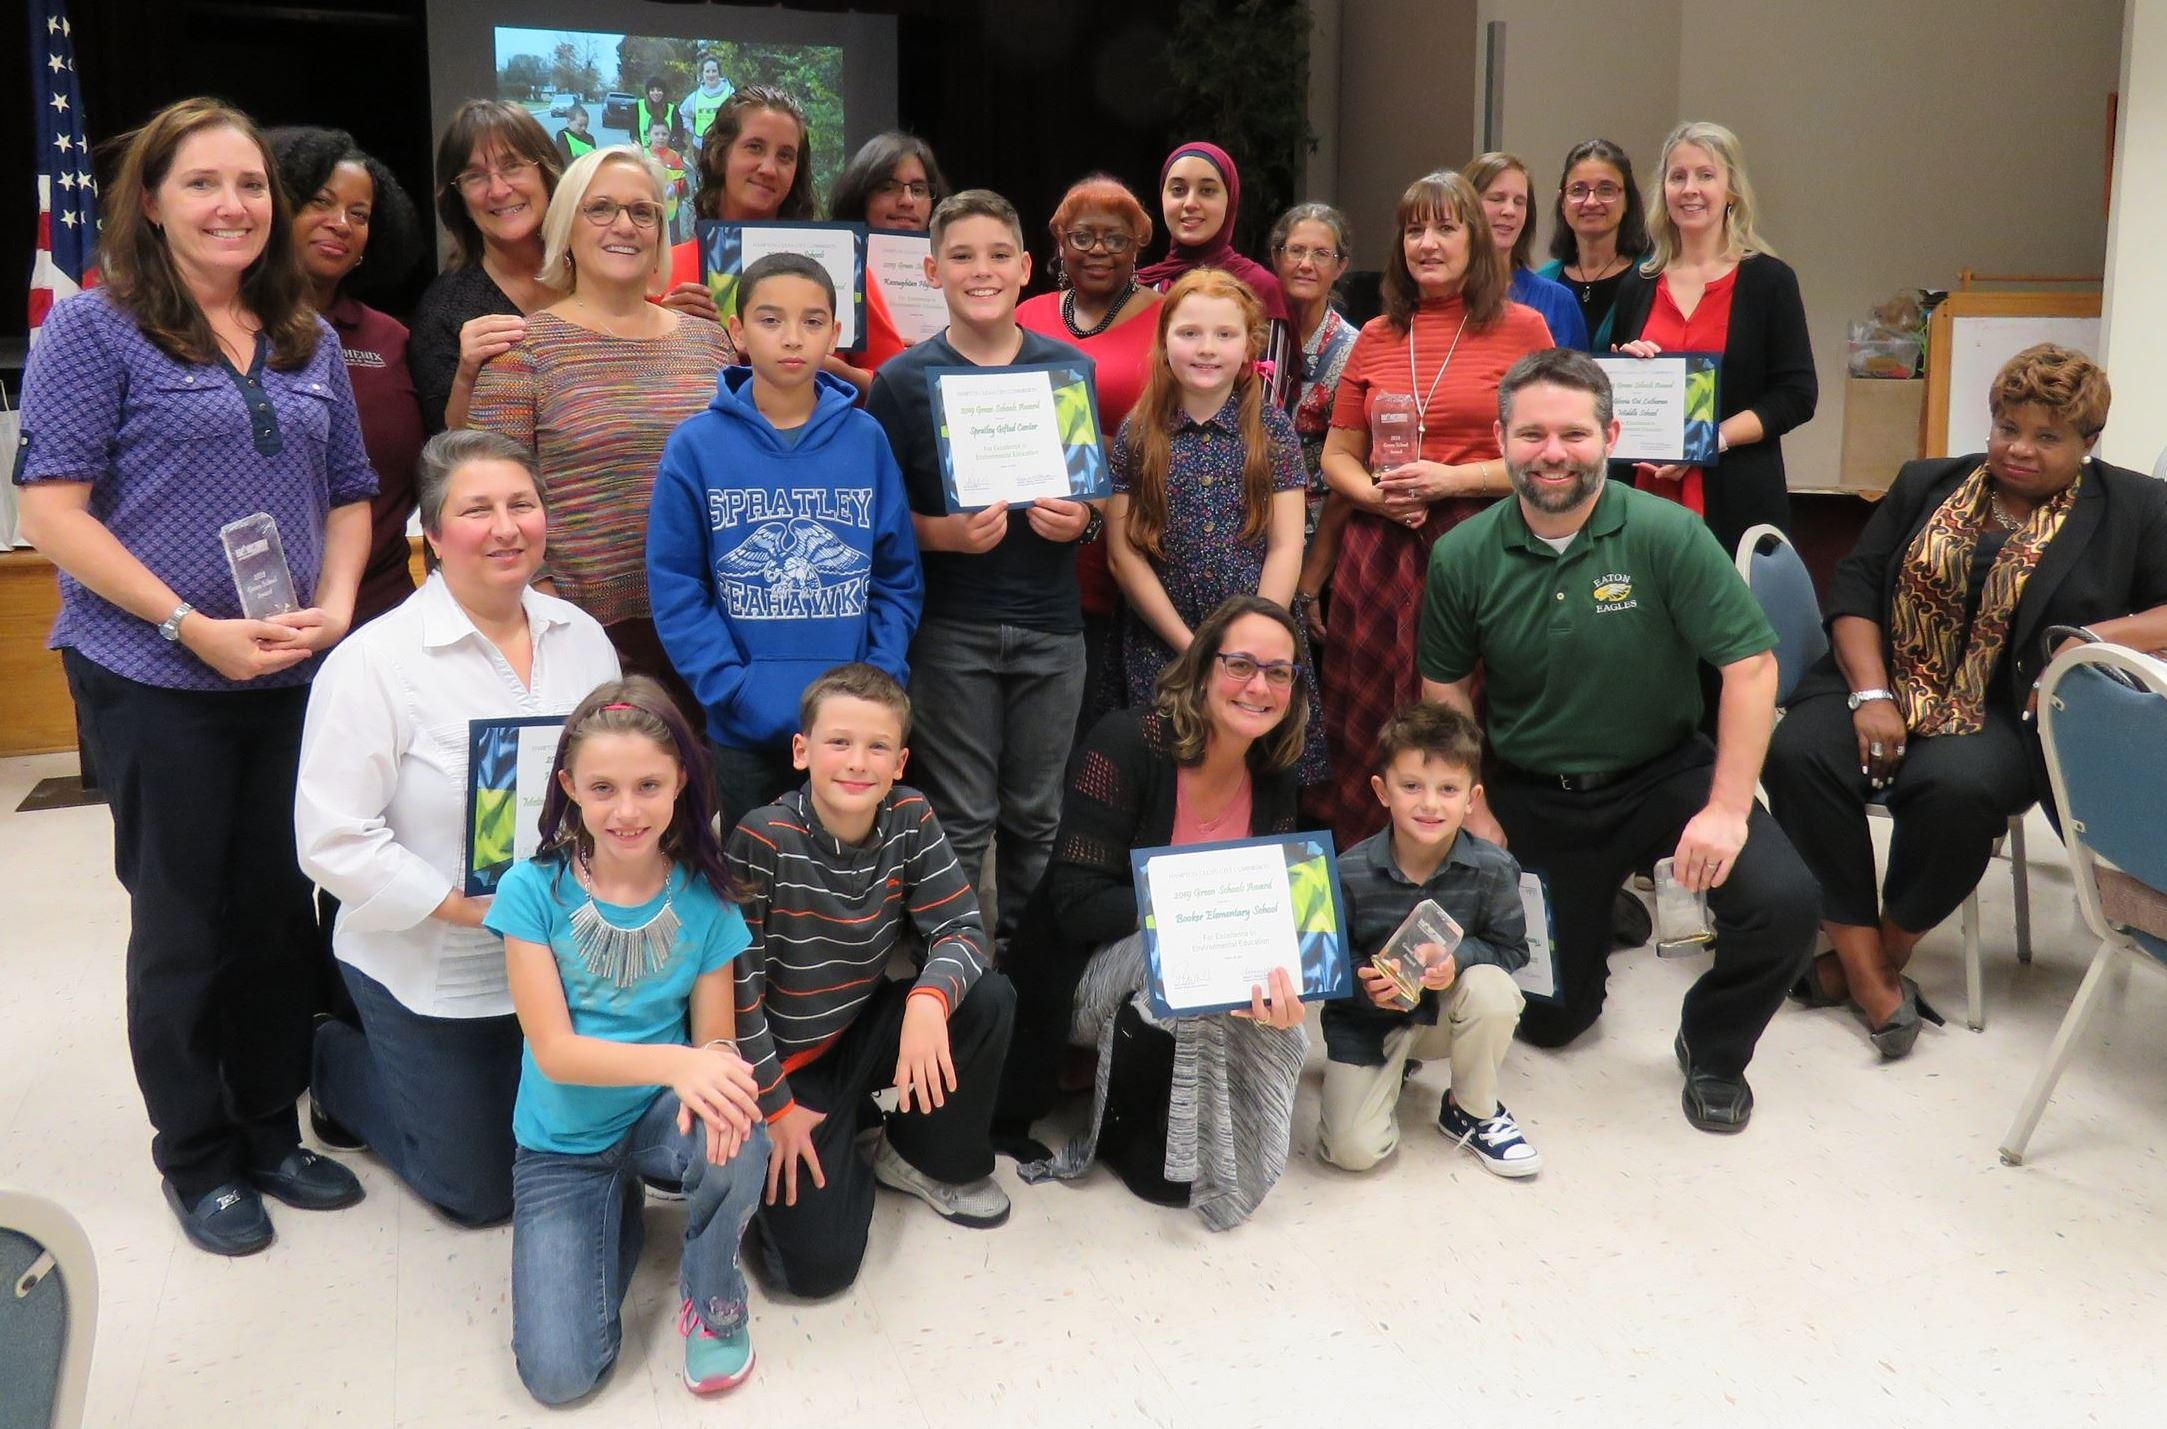 Representatives of schools that received Green School Awards or Honorable Mention Awards